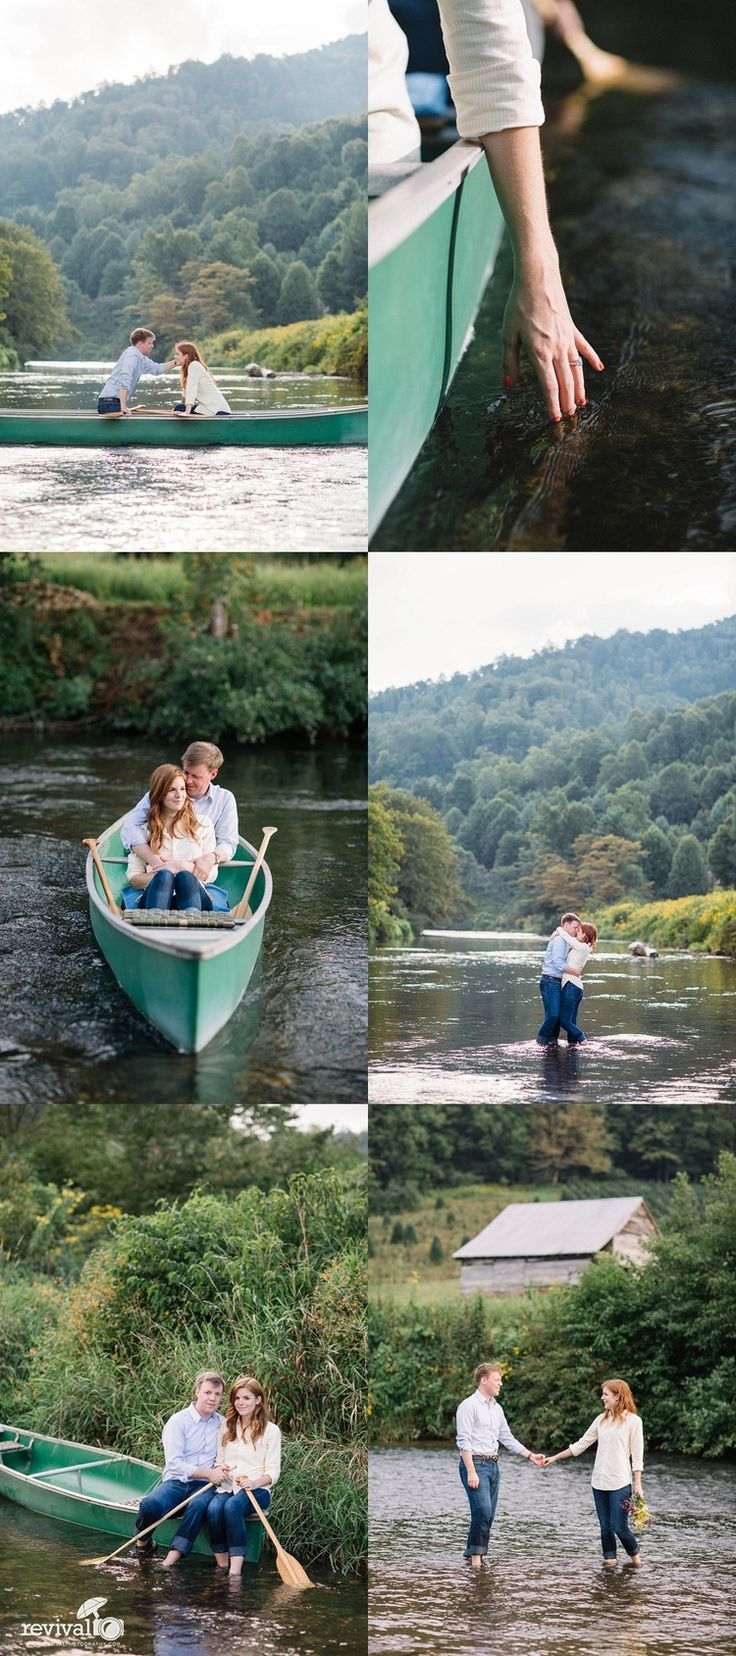 1000 Images About The Photo Location Inspiration On Pinterest